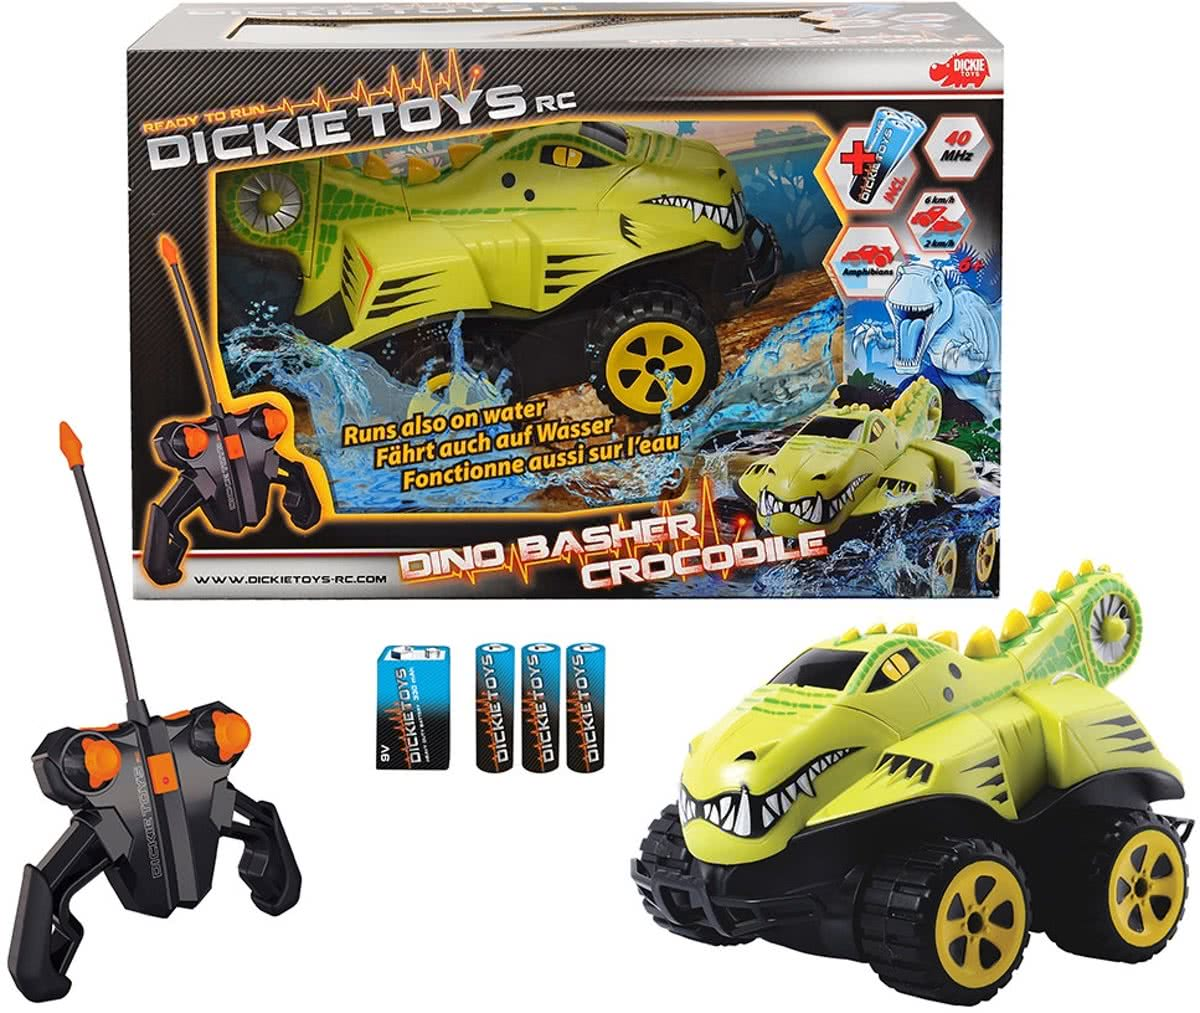 RC Dino Basher Crocodile